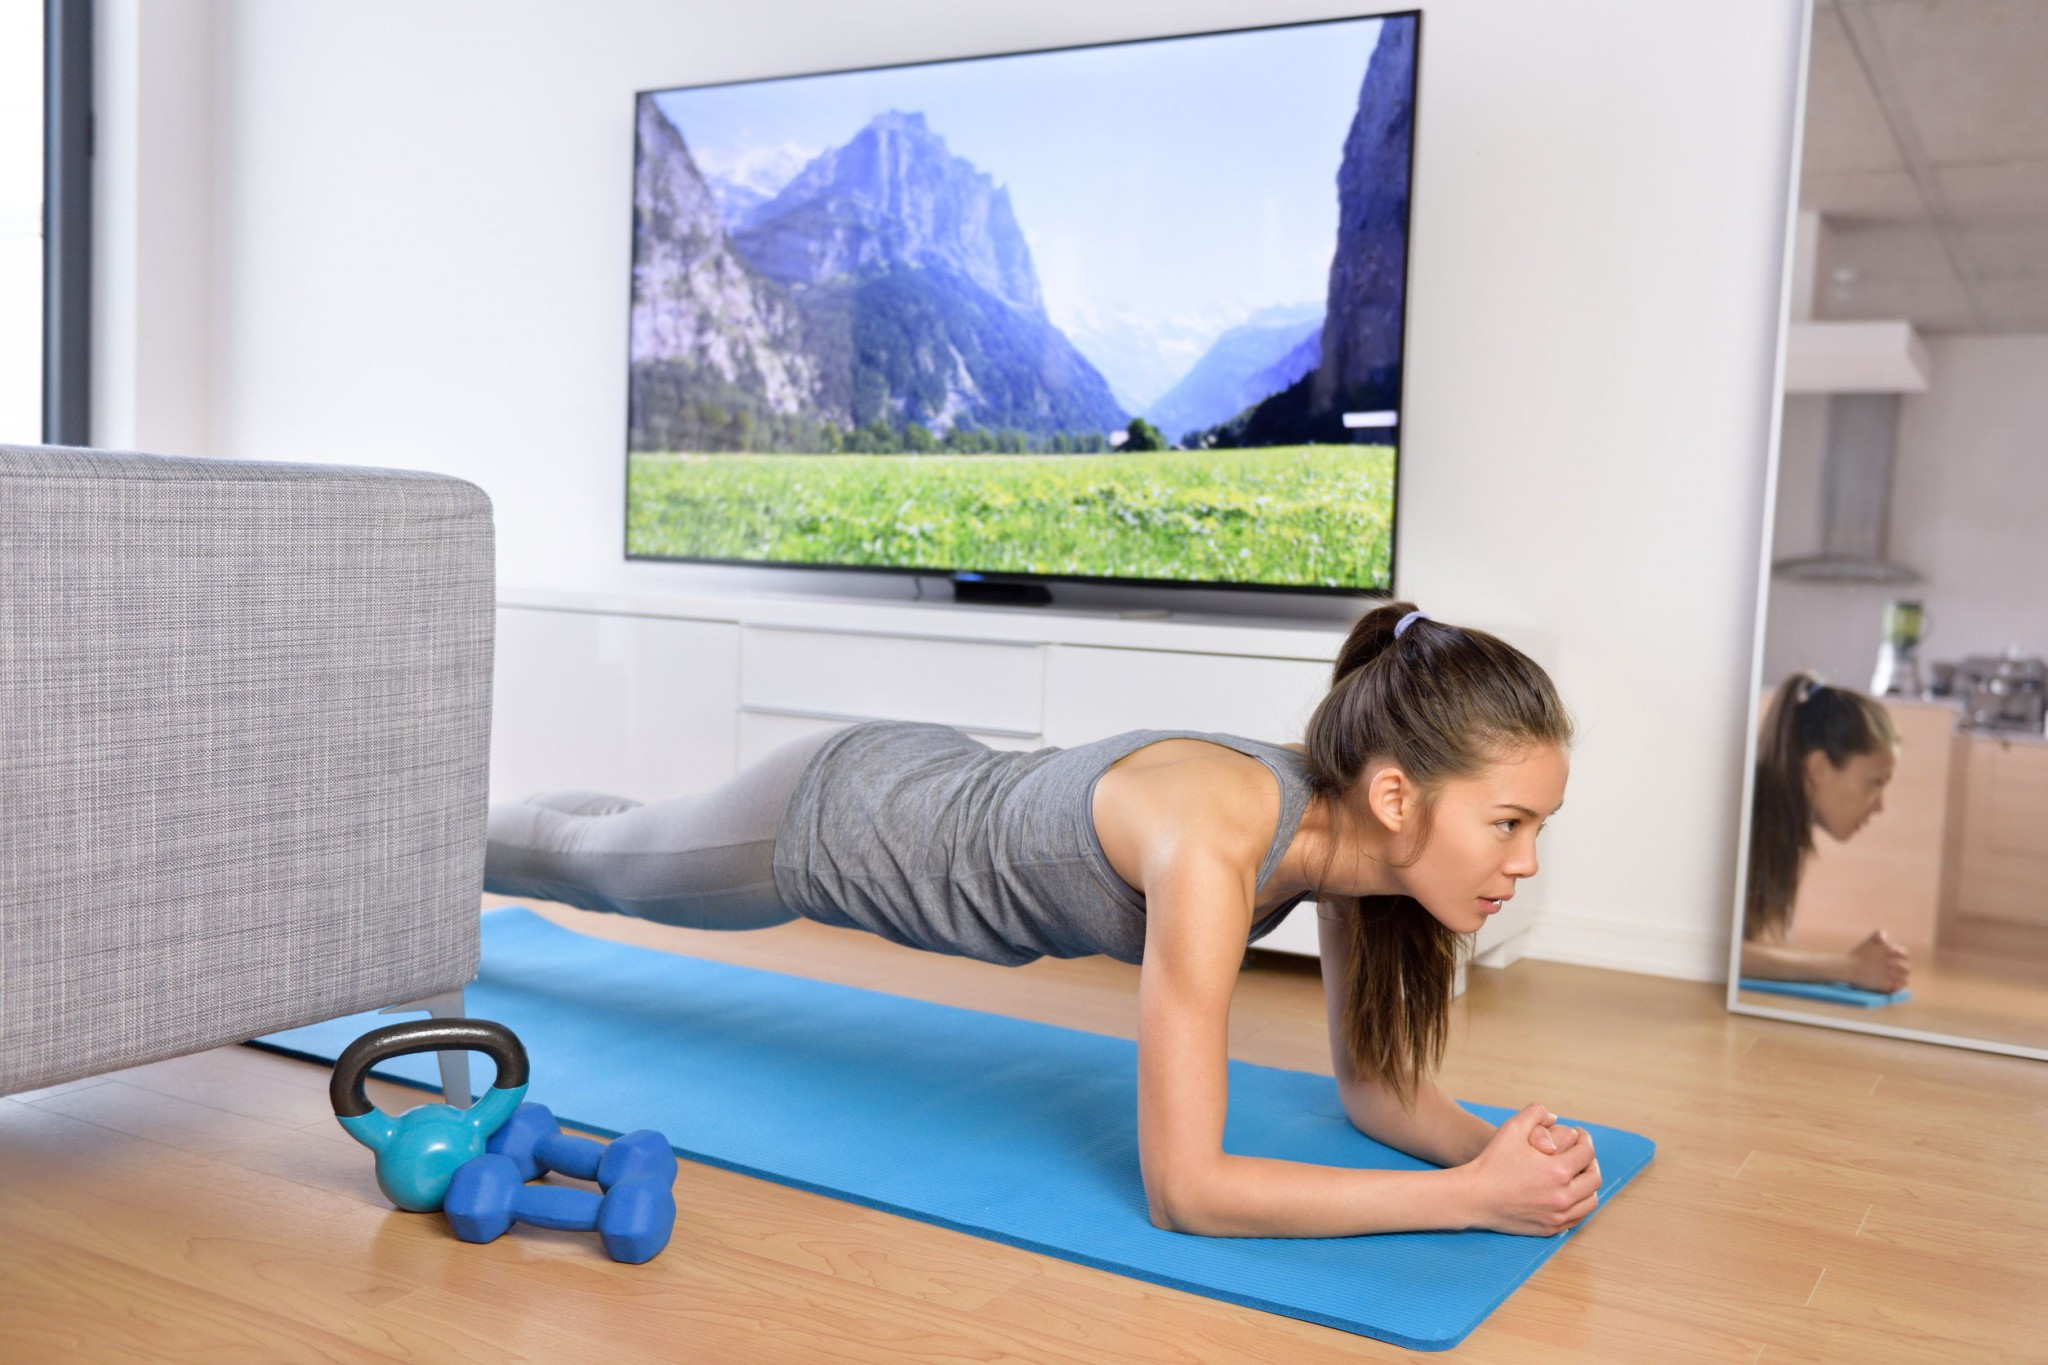 HIIT at Home: Overview